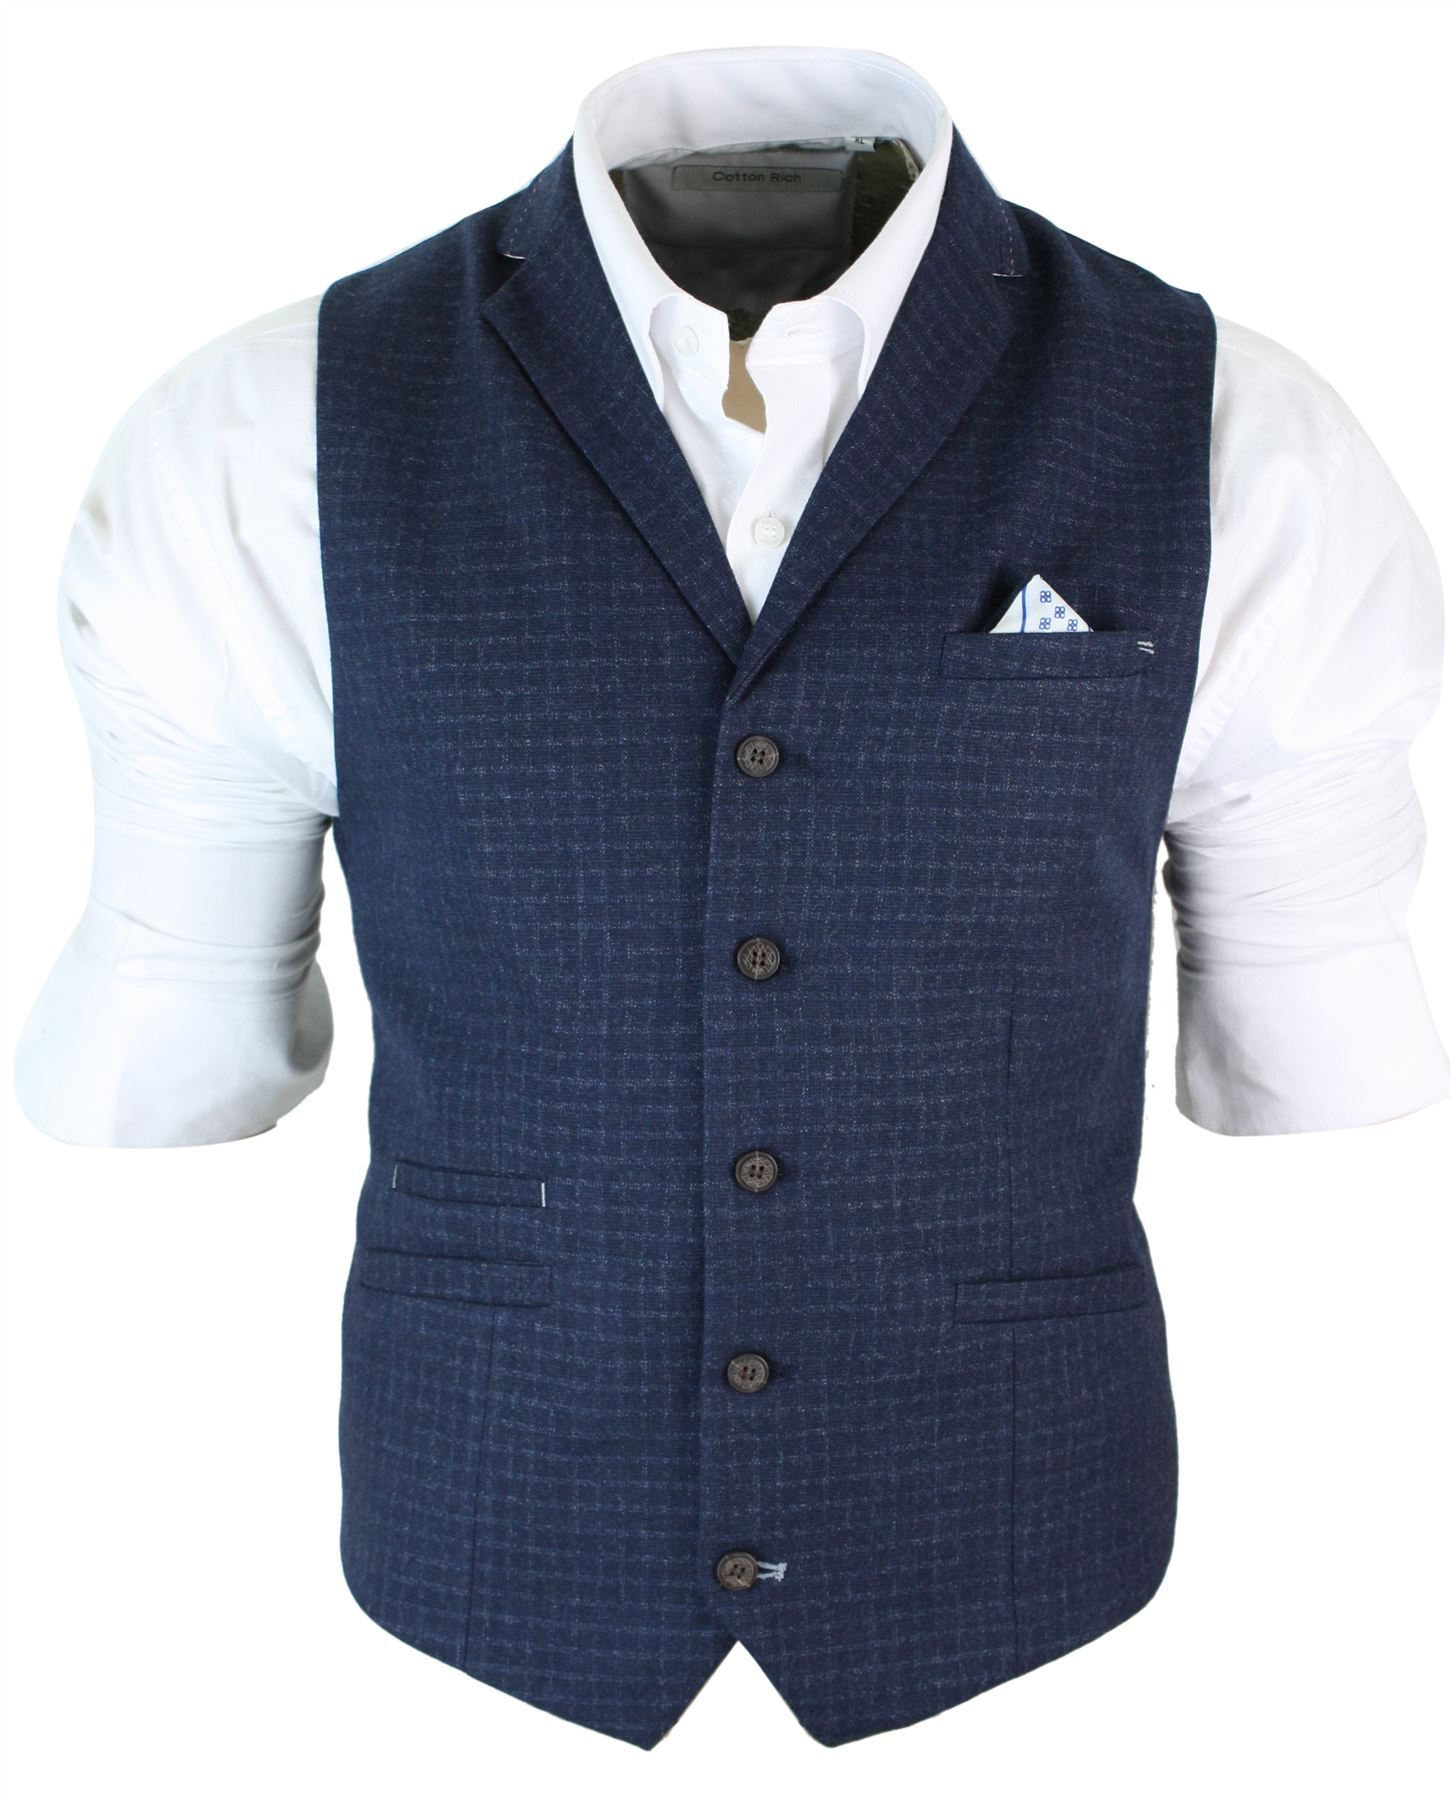 Shop for a men's blue waistcoats at tennesseemyblogw0.cf Next day delivery and free returns available. s of products online. Browse men's blue waistcoats online now!